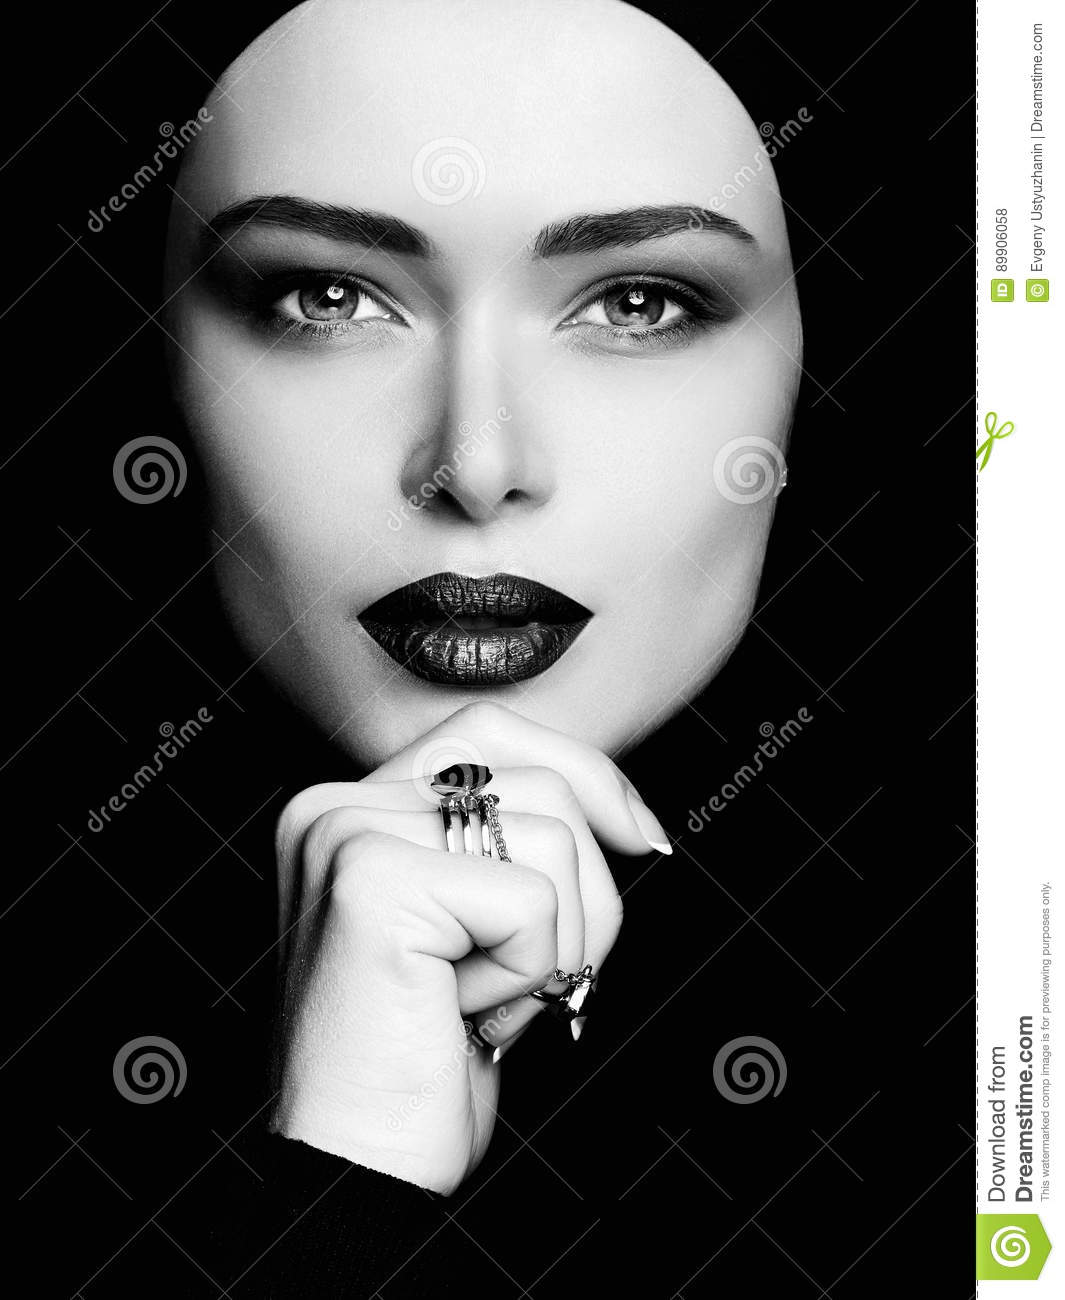 Black and white portrait of beautiful woman in hijab pretty young muslim woman face cosmetics concept